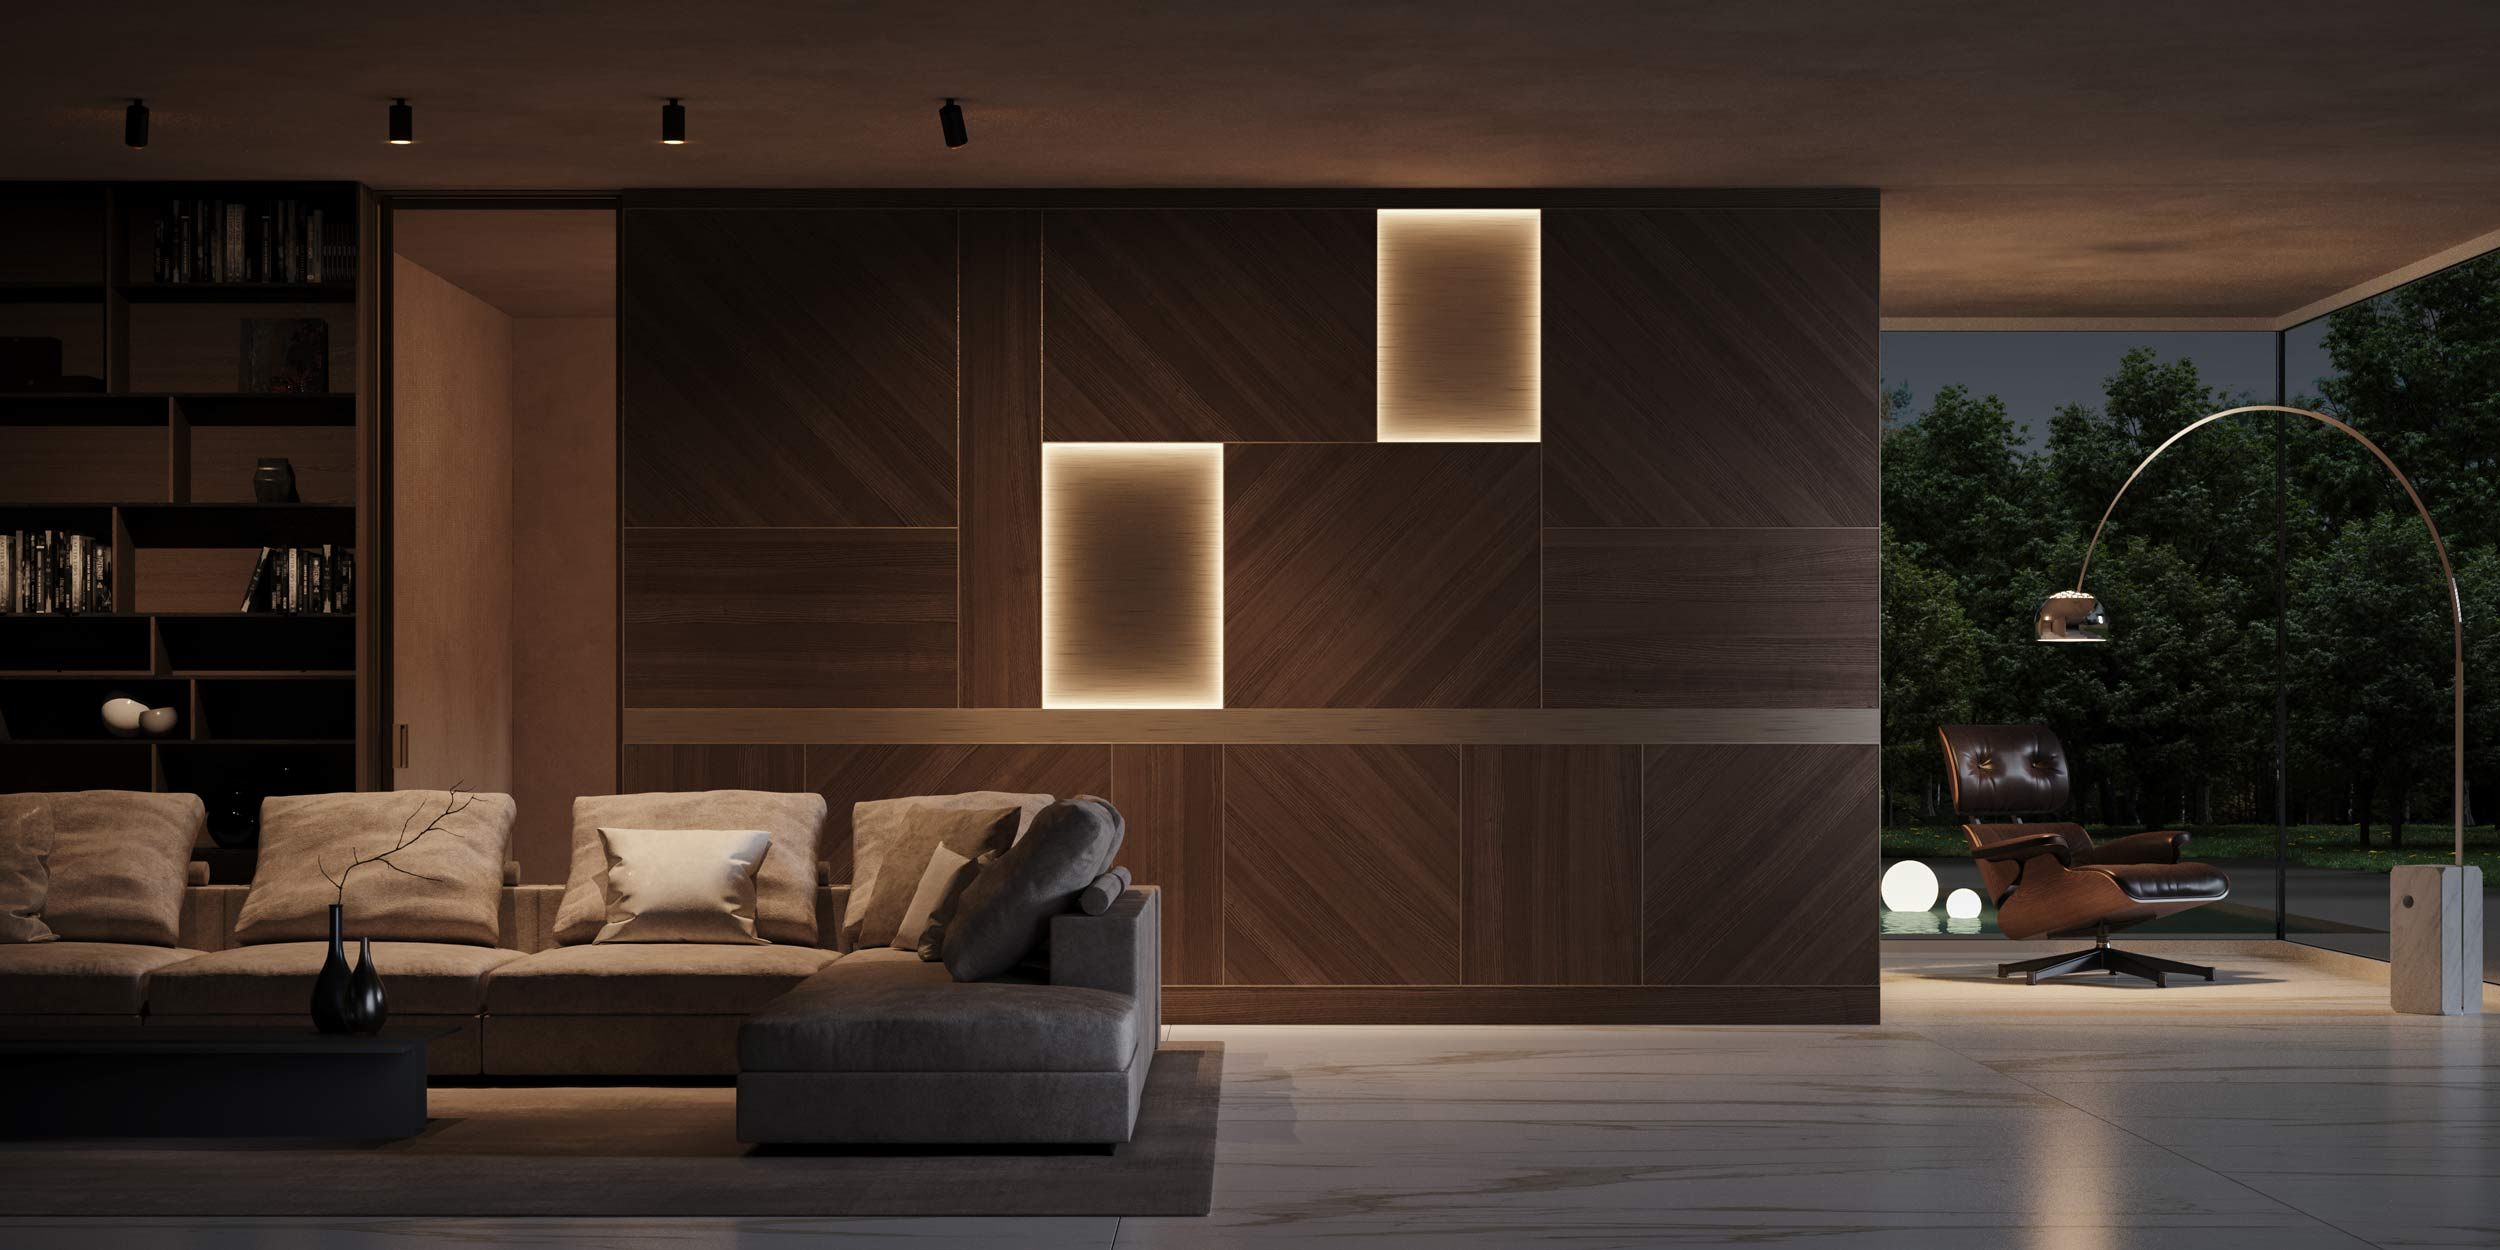 Wooden boiserie equipped with illuminated metal panels